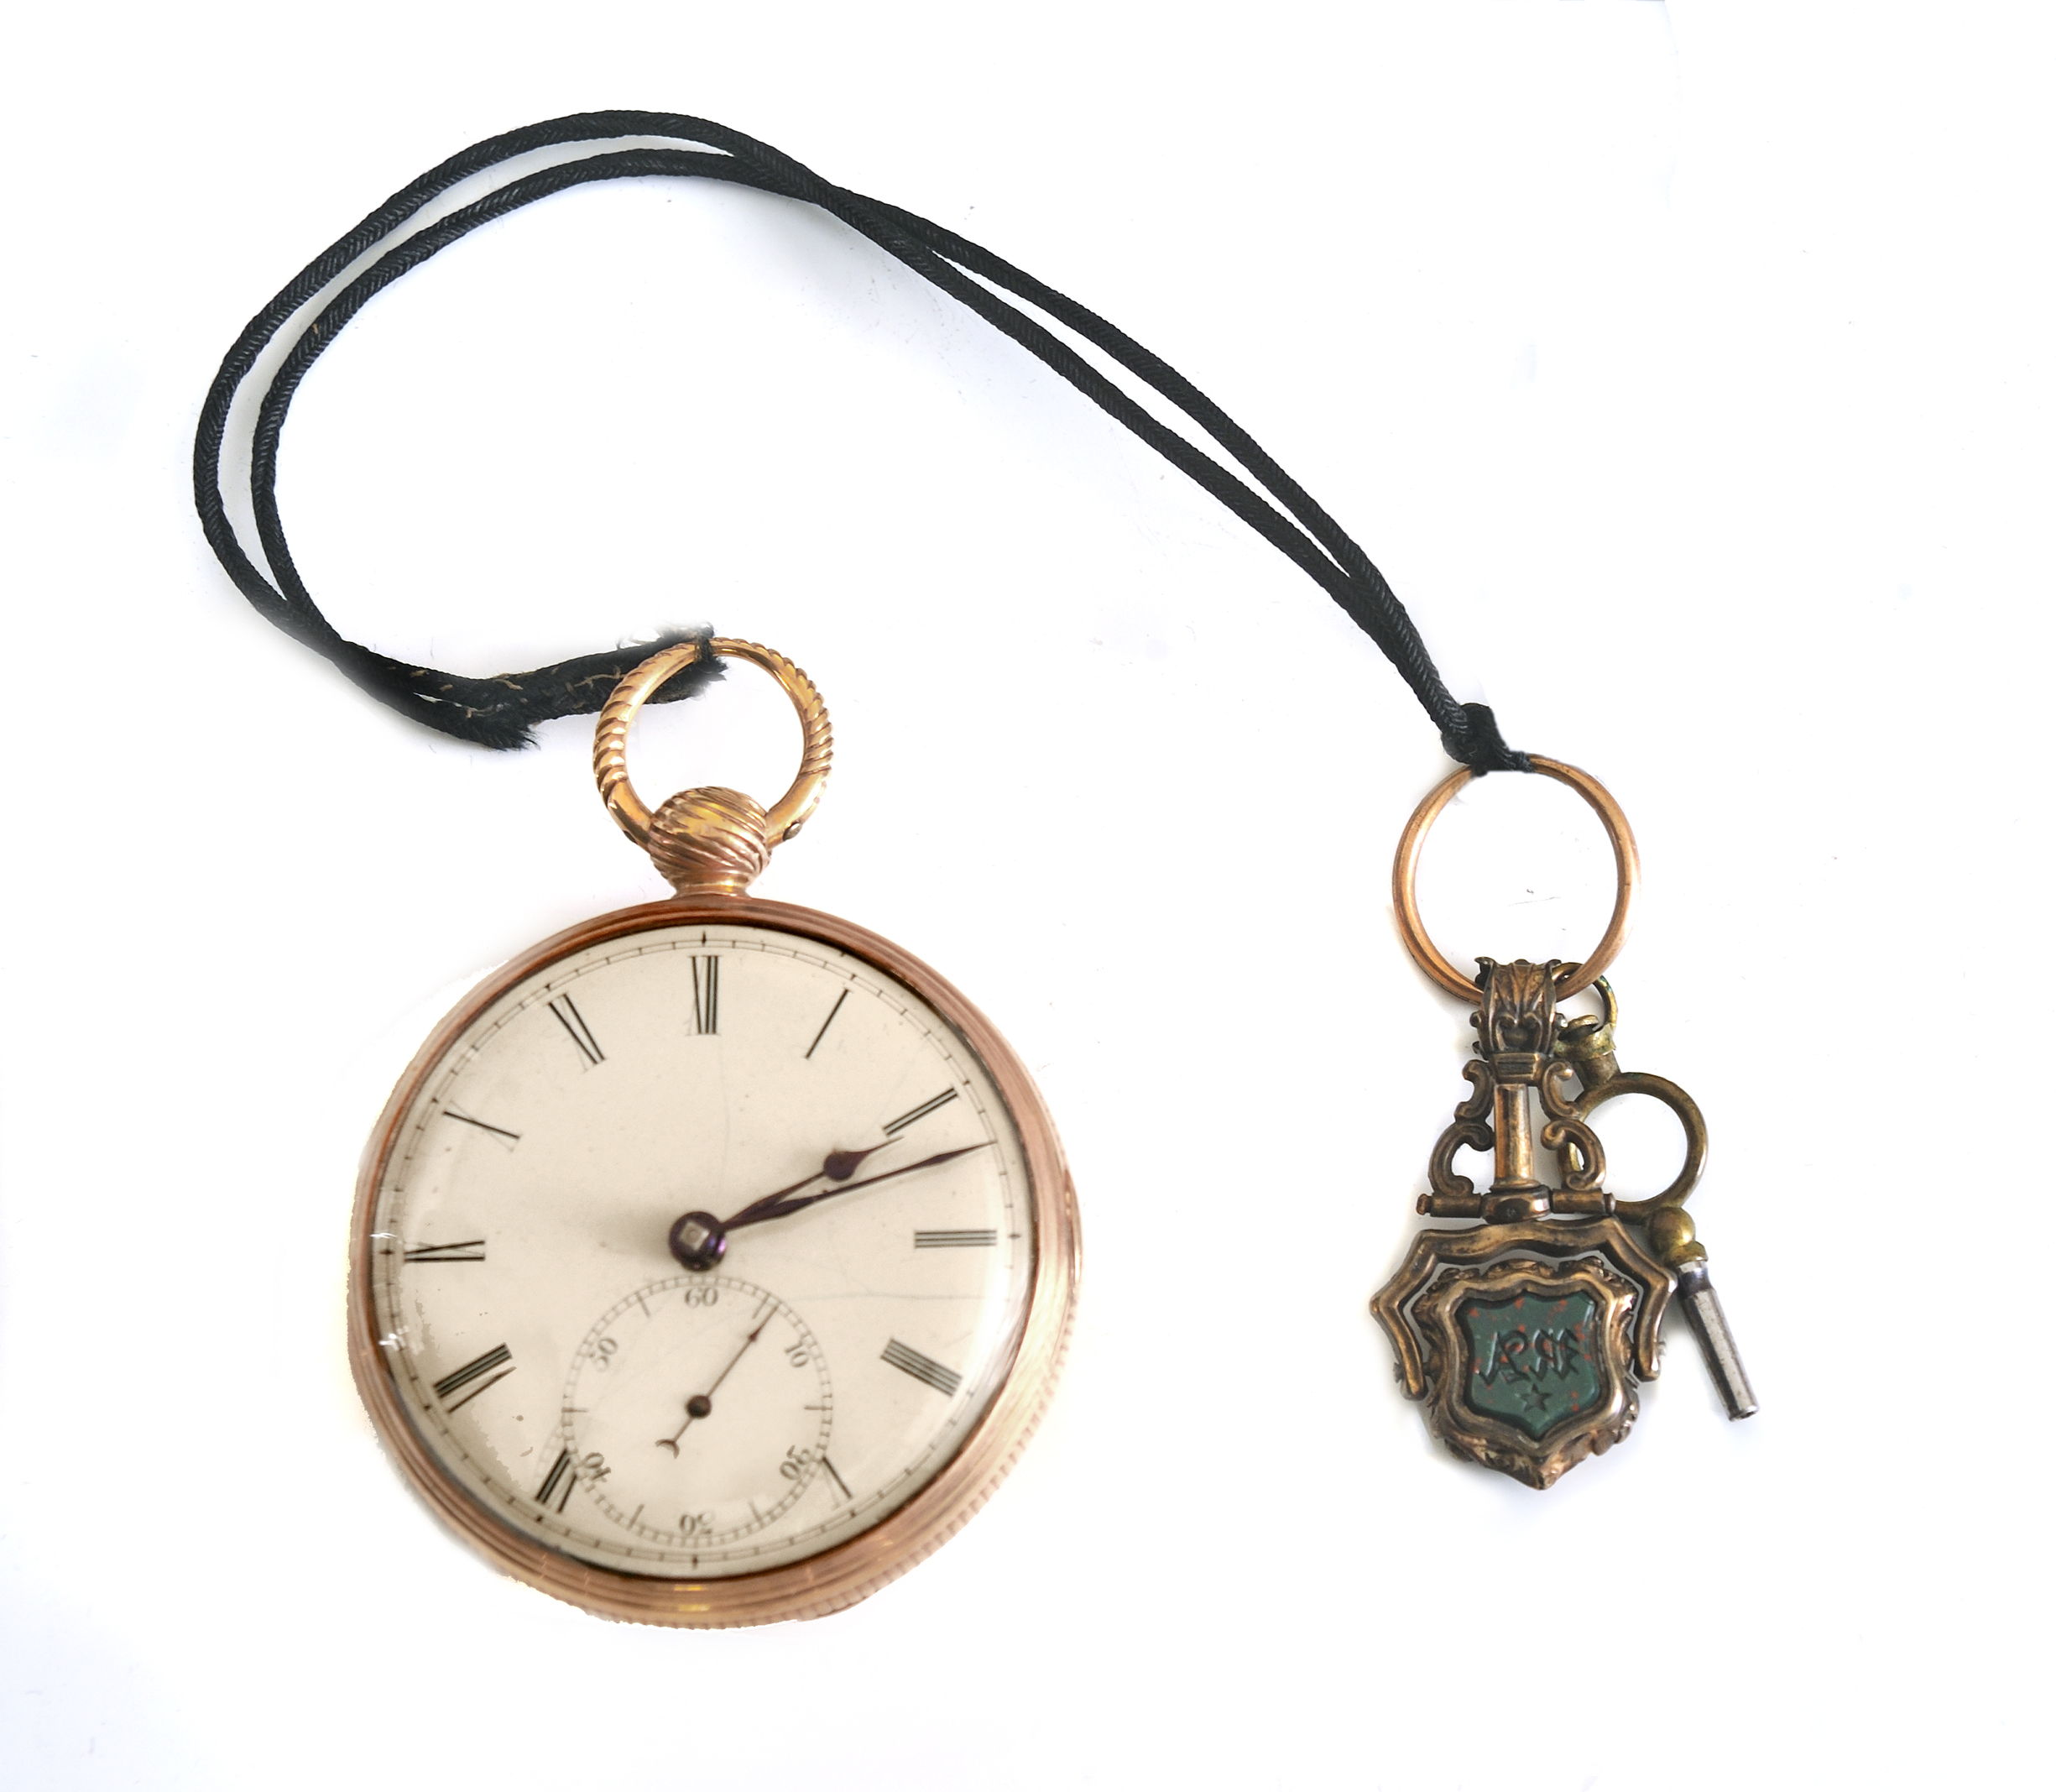 Pocket watch owned by Richard Clough Anderson, 1776